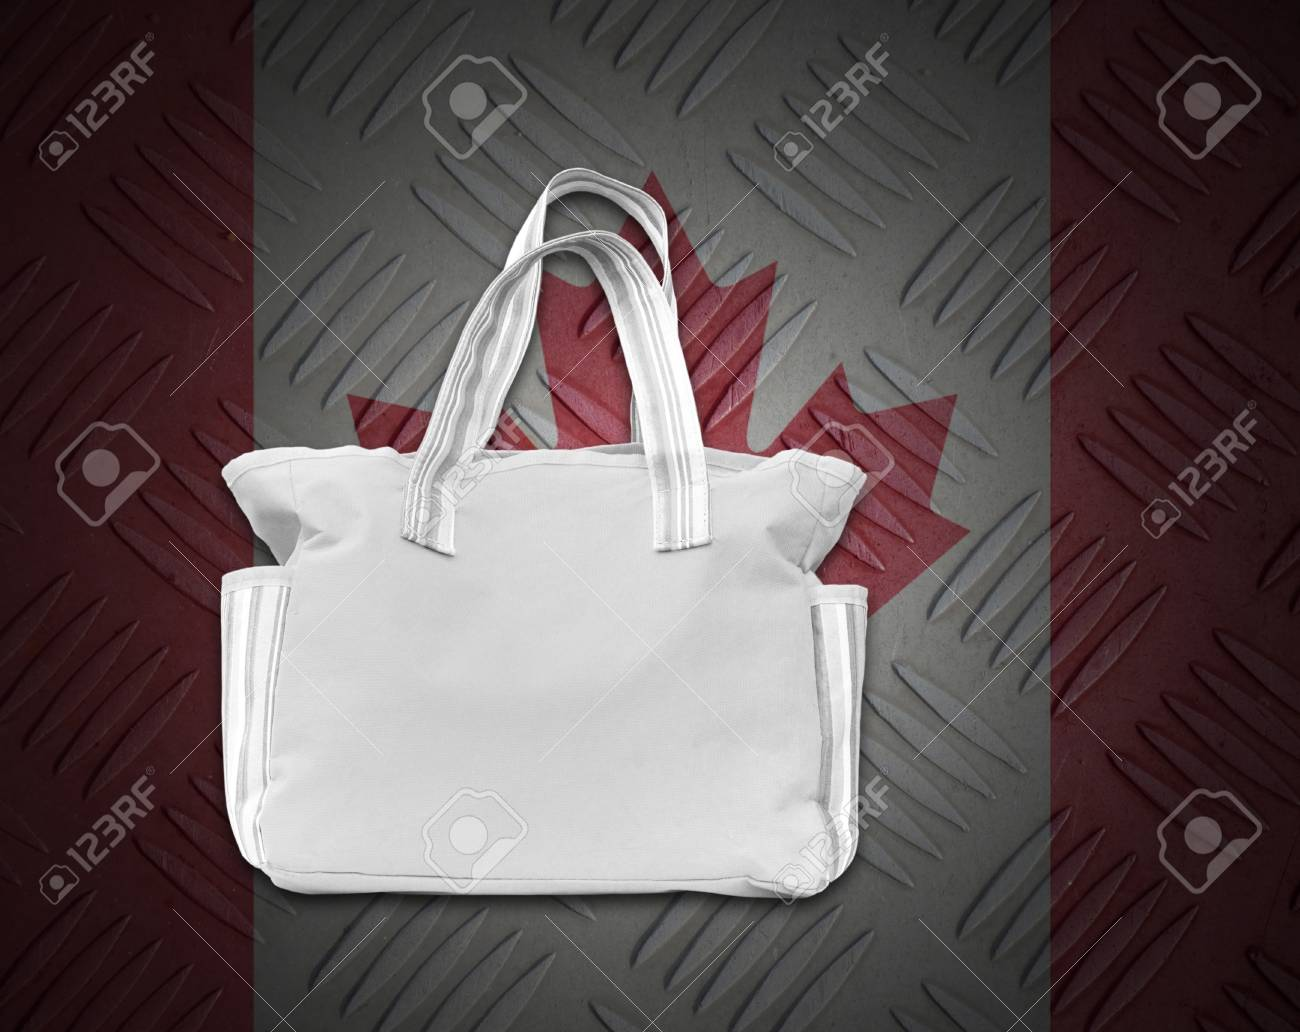 Environment concept from white cloth bag on background. Stock Photo - 15273253